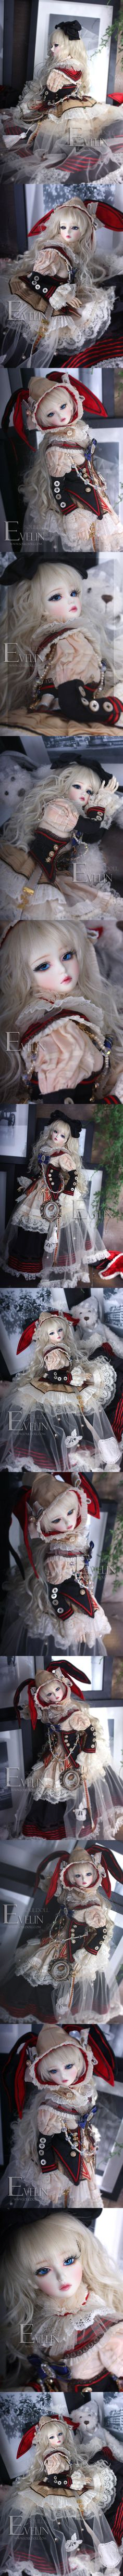 Evelin 43cm, Soul Doll - BJD Dolls, Accessories - Alice's Collections